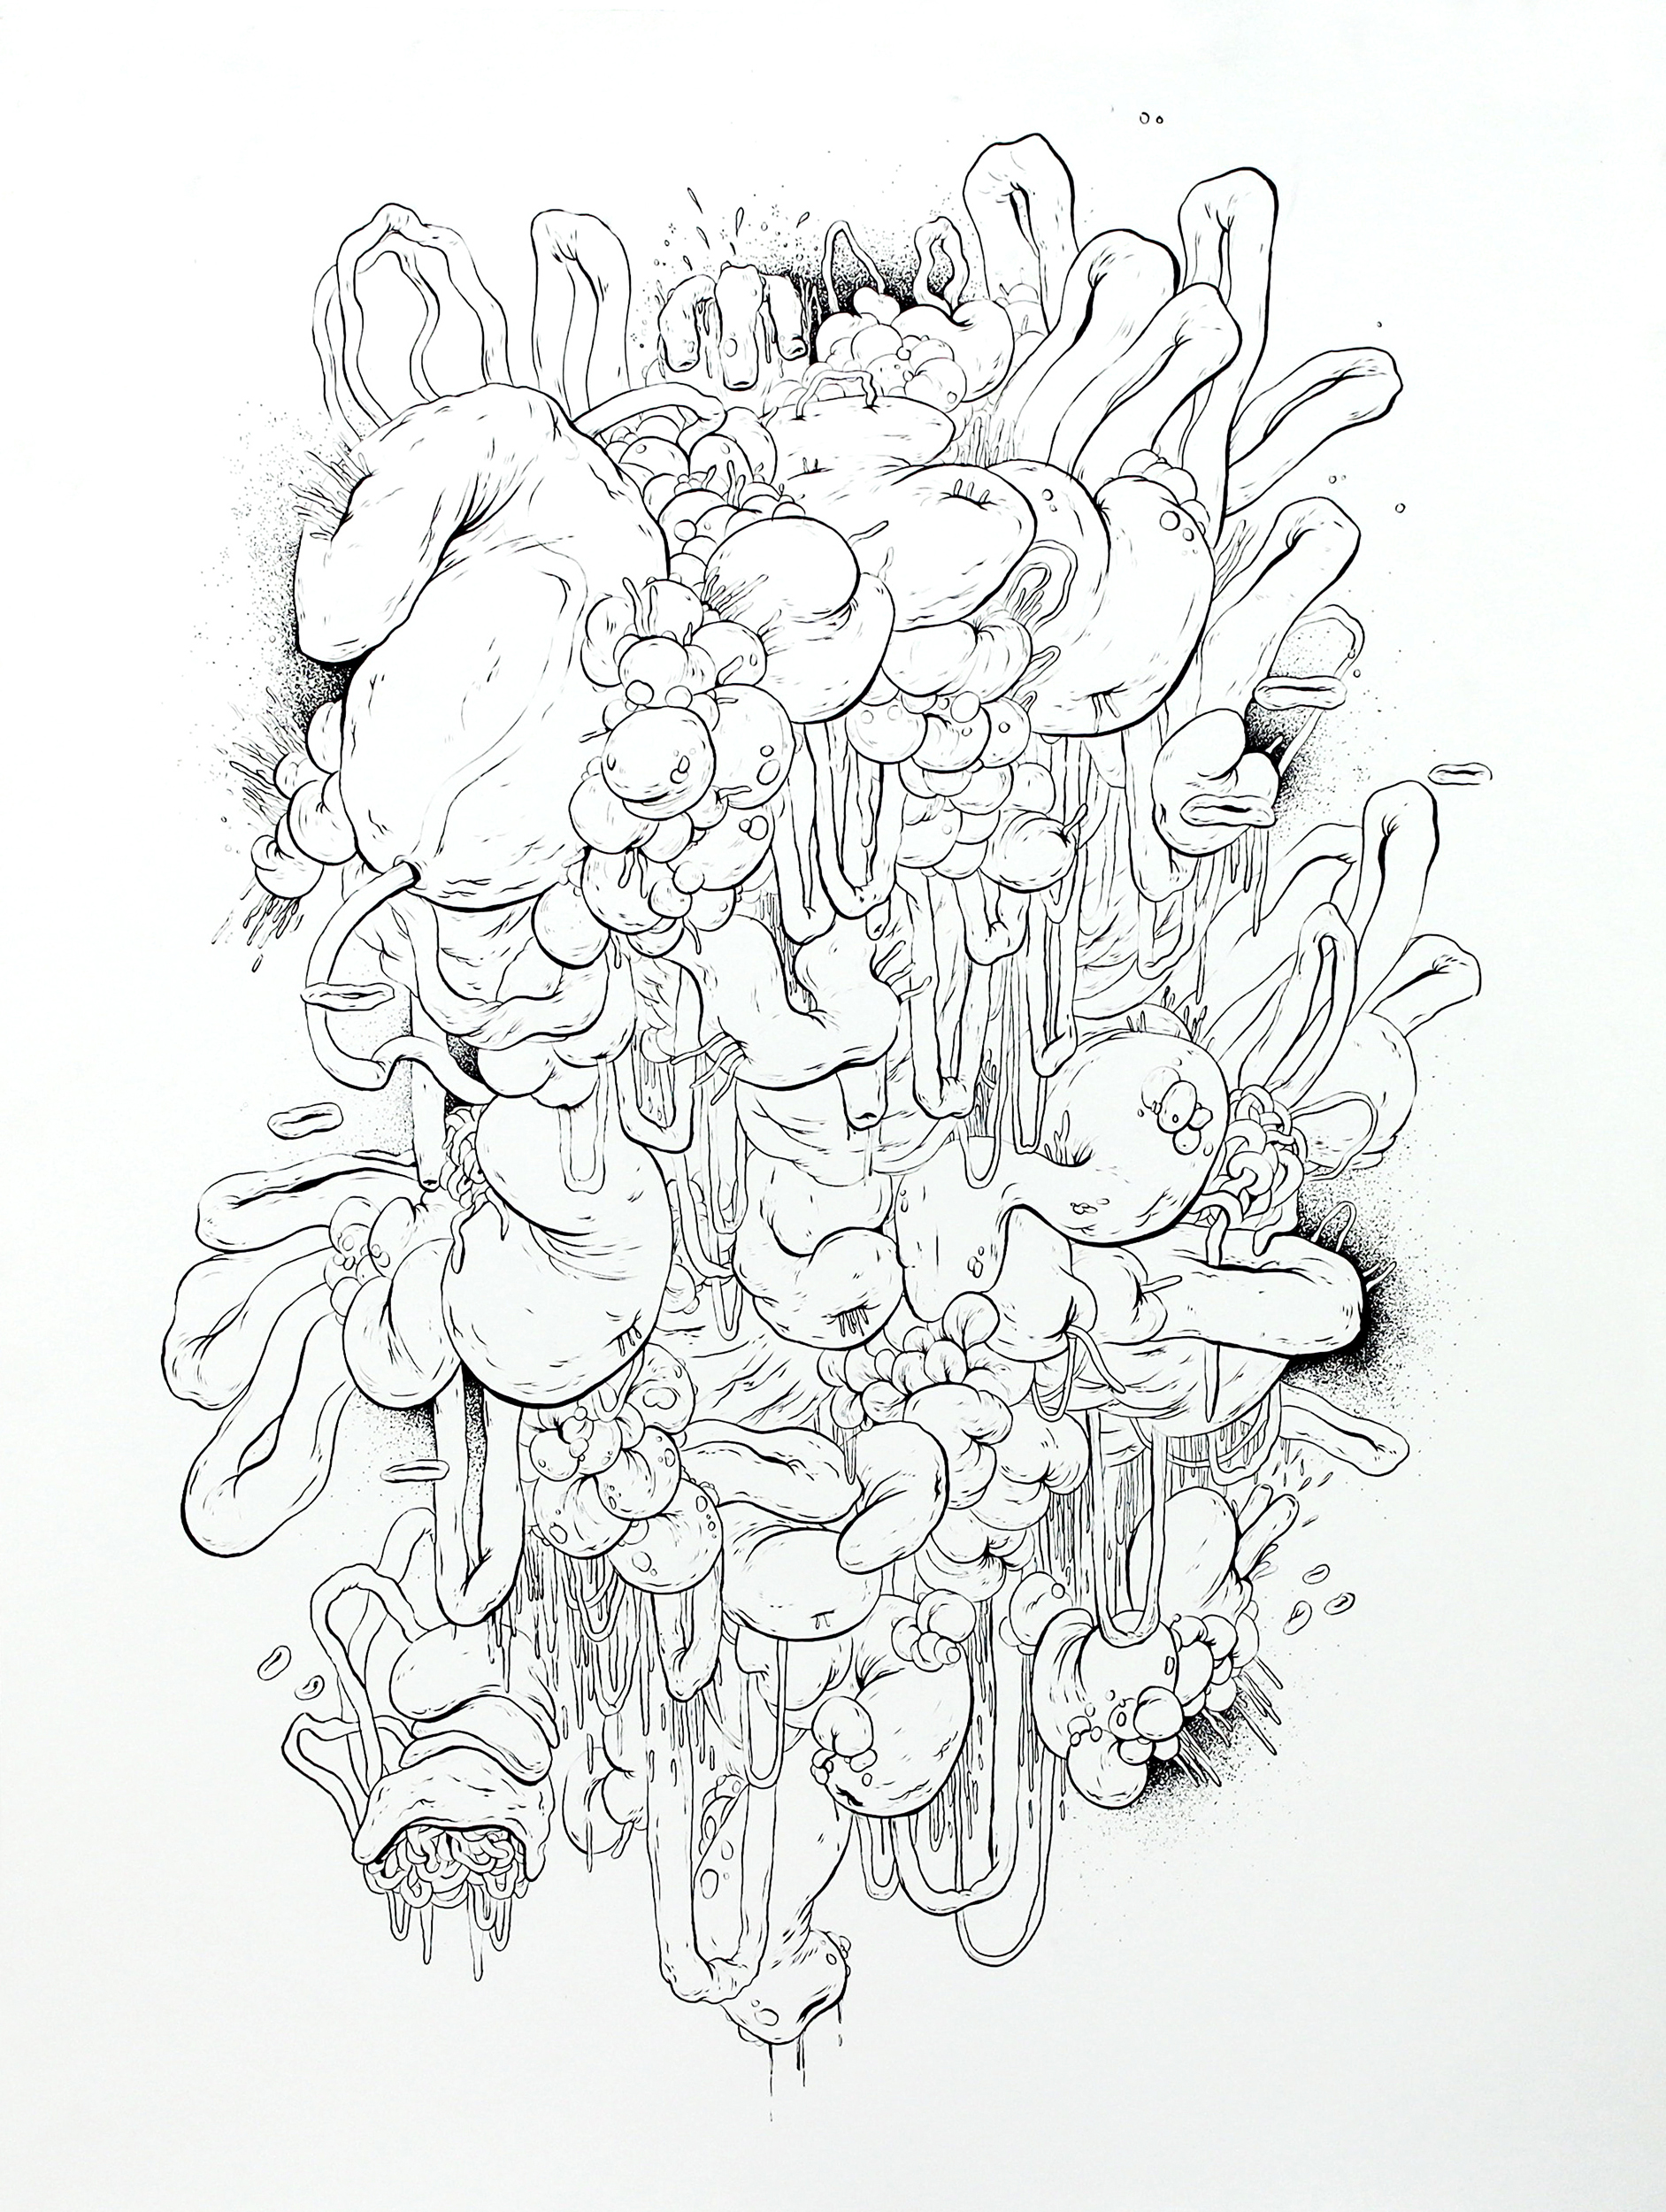 Mish-Mash No. 2,  ink on paper, 30 x 25.5 in